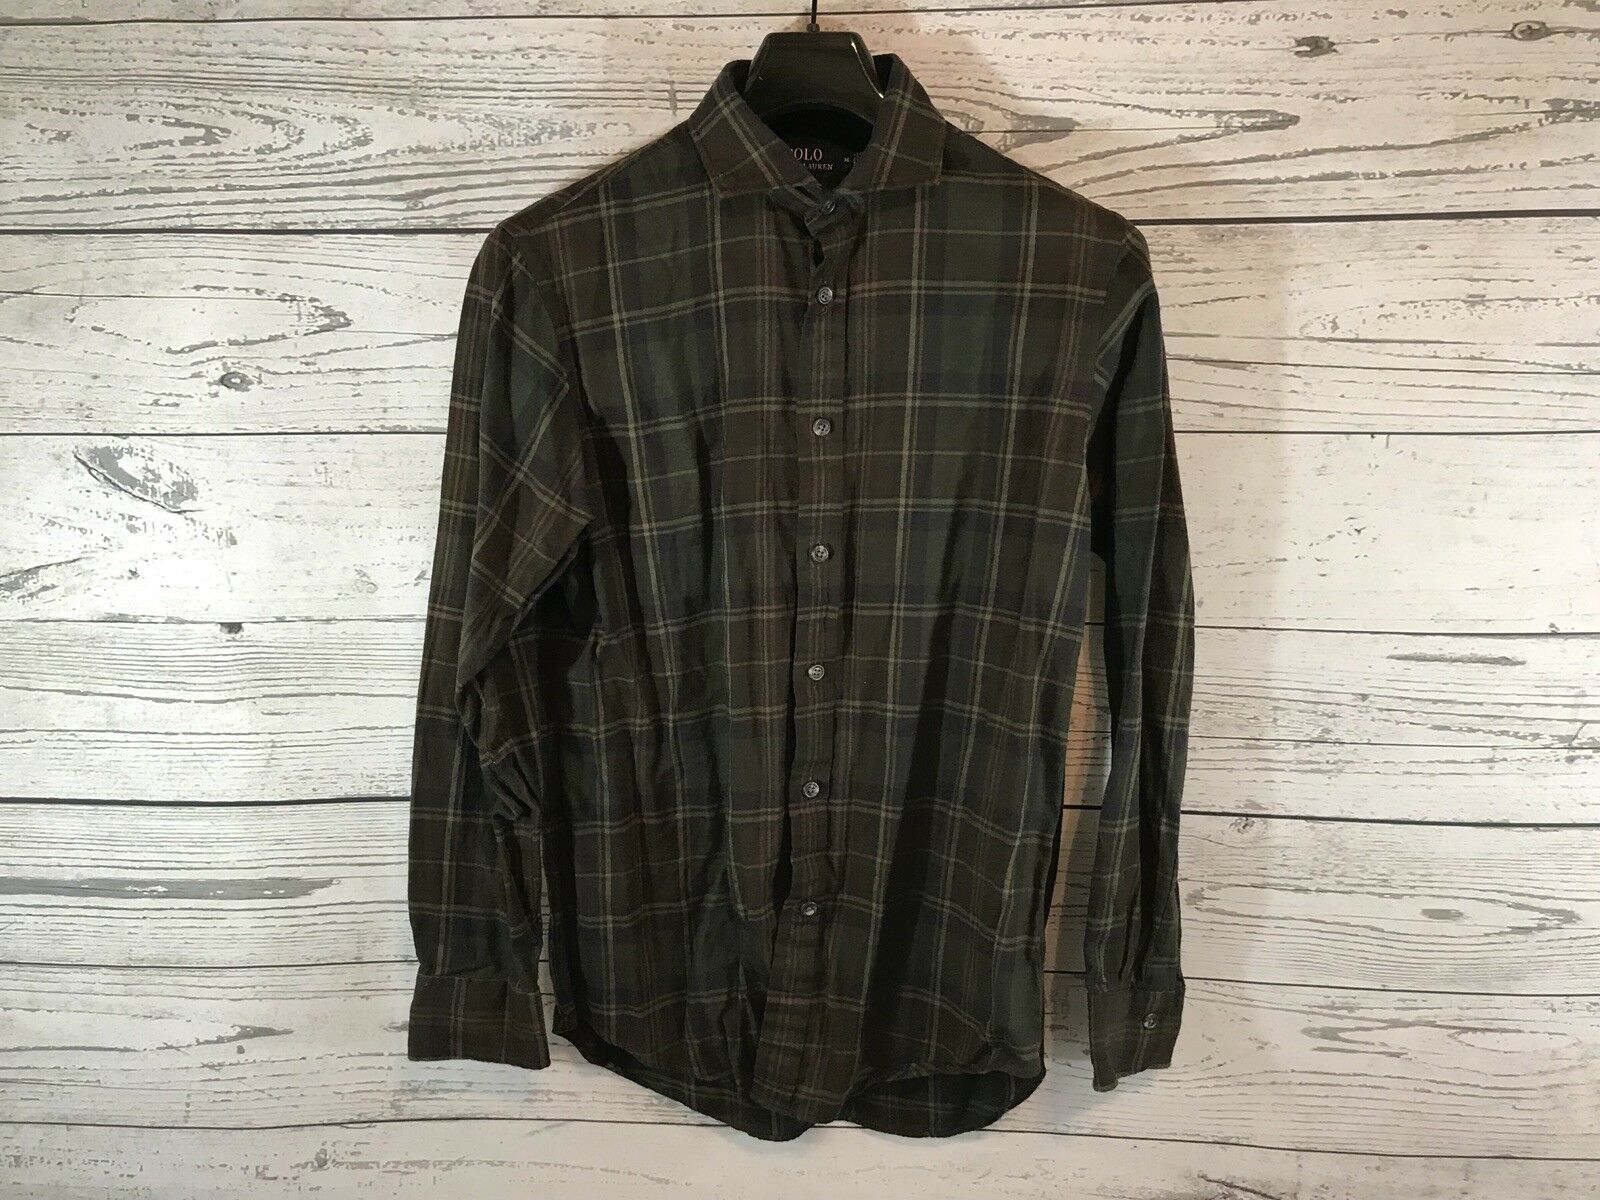 Polo Ralph Lauren Mens Brown Plaid Long Sleeve Button Down Shirt Size Medium